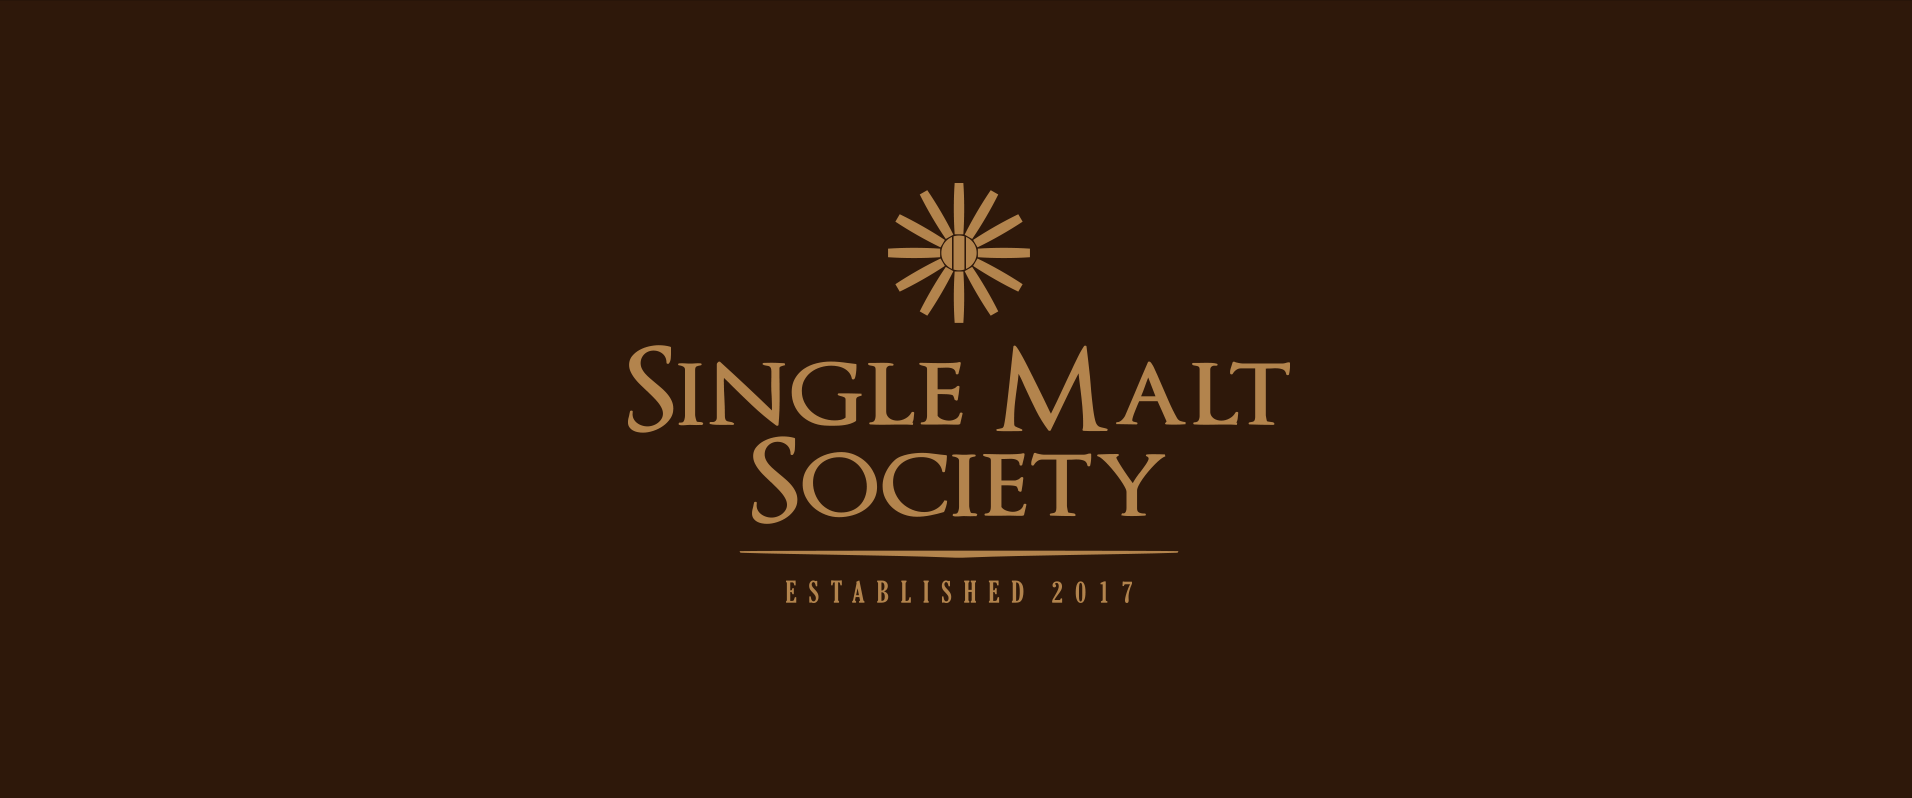 Despre Single Malt Society